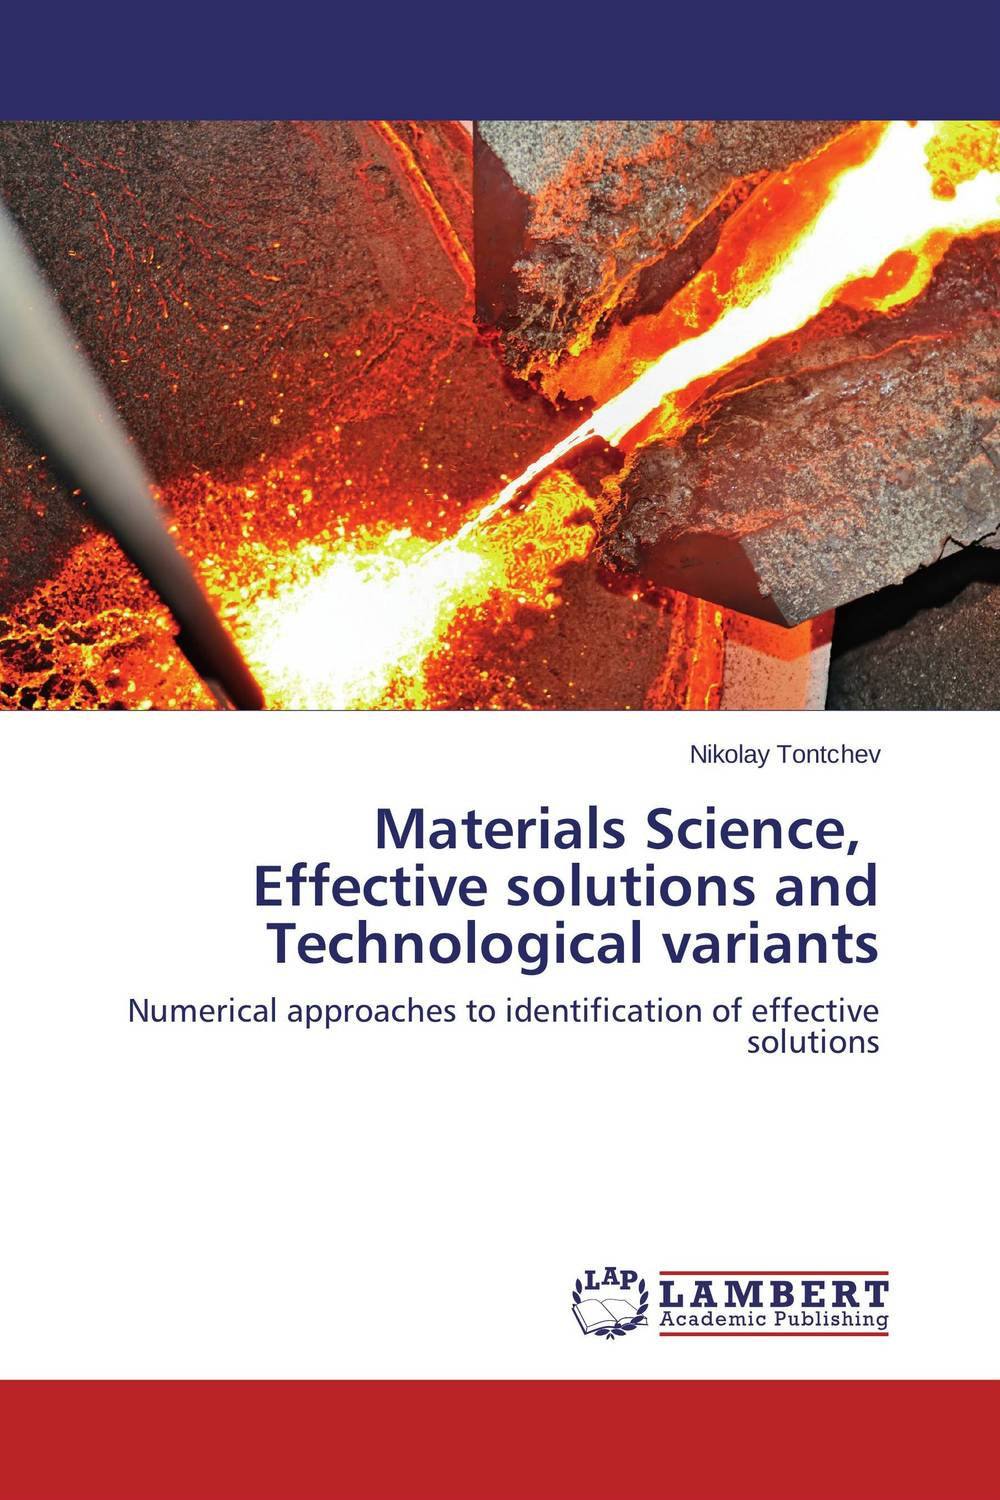 Materials Science,   Effective solutions and Technological variants сборник статей science fundamental and applied proceedings of materials the international scientific conference czech republic karlovy vary – russia moscow 27 28 november 2015